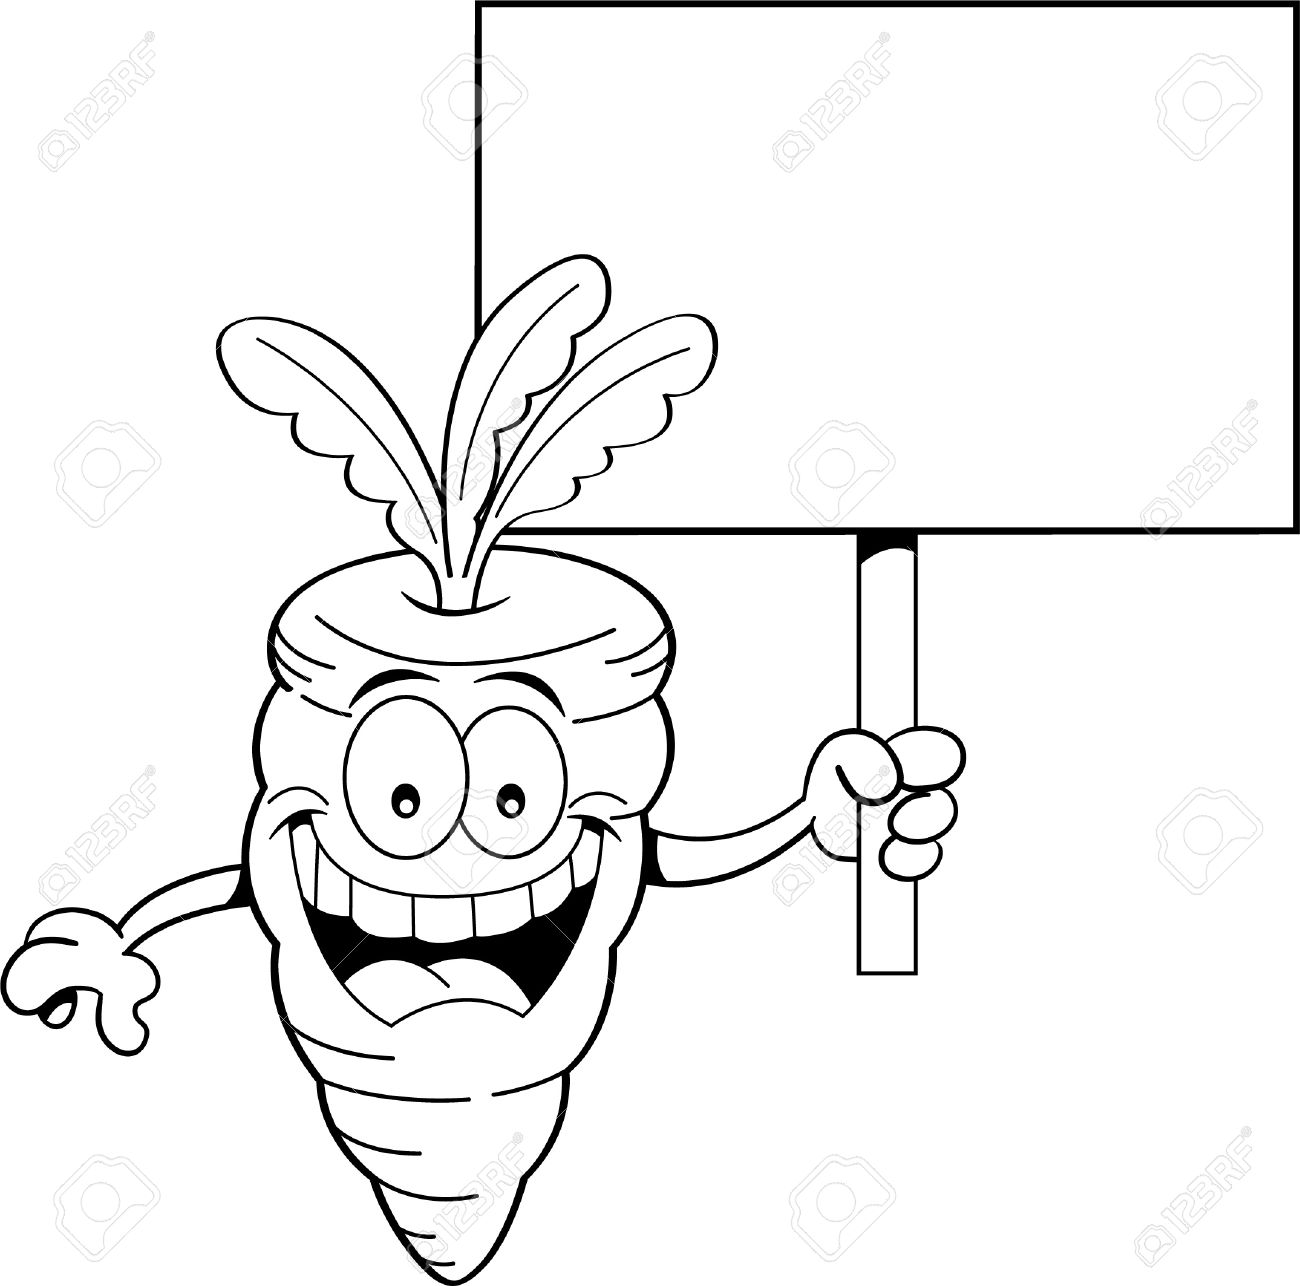 black and white illustration of a smiling carrot holding a sign